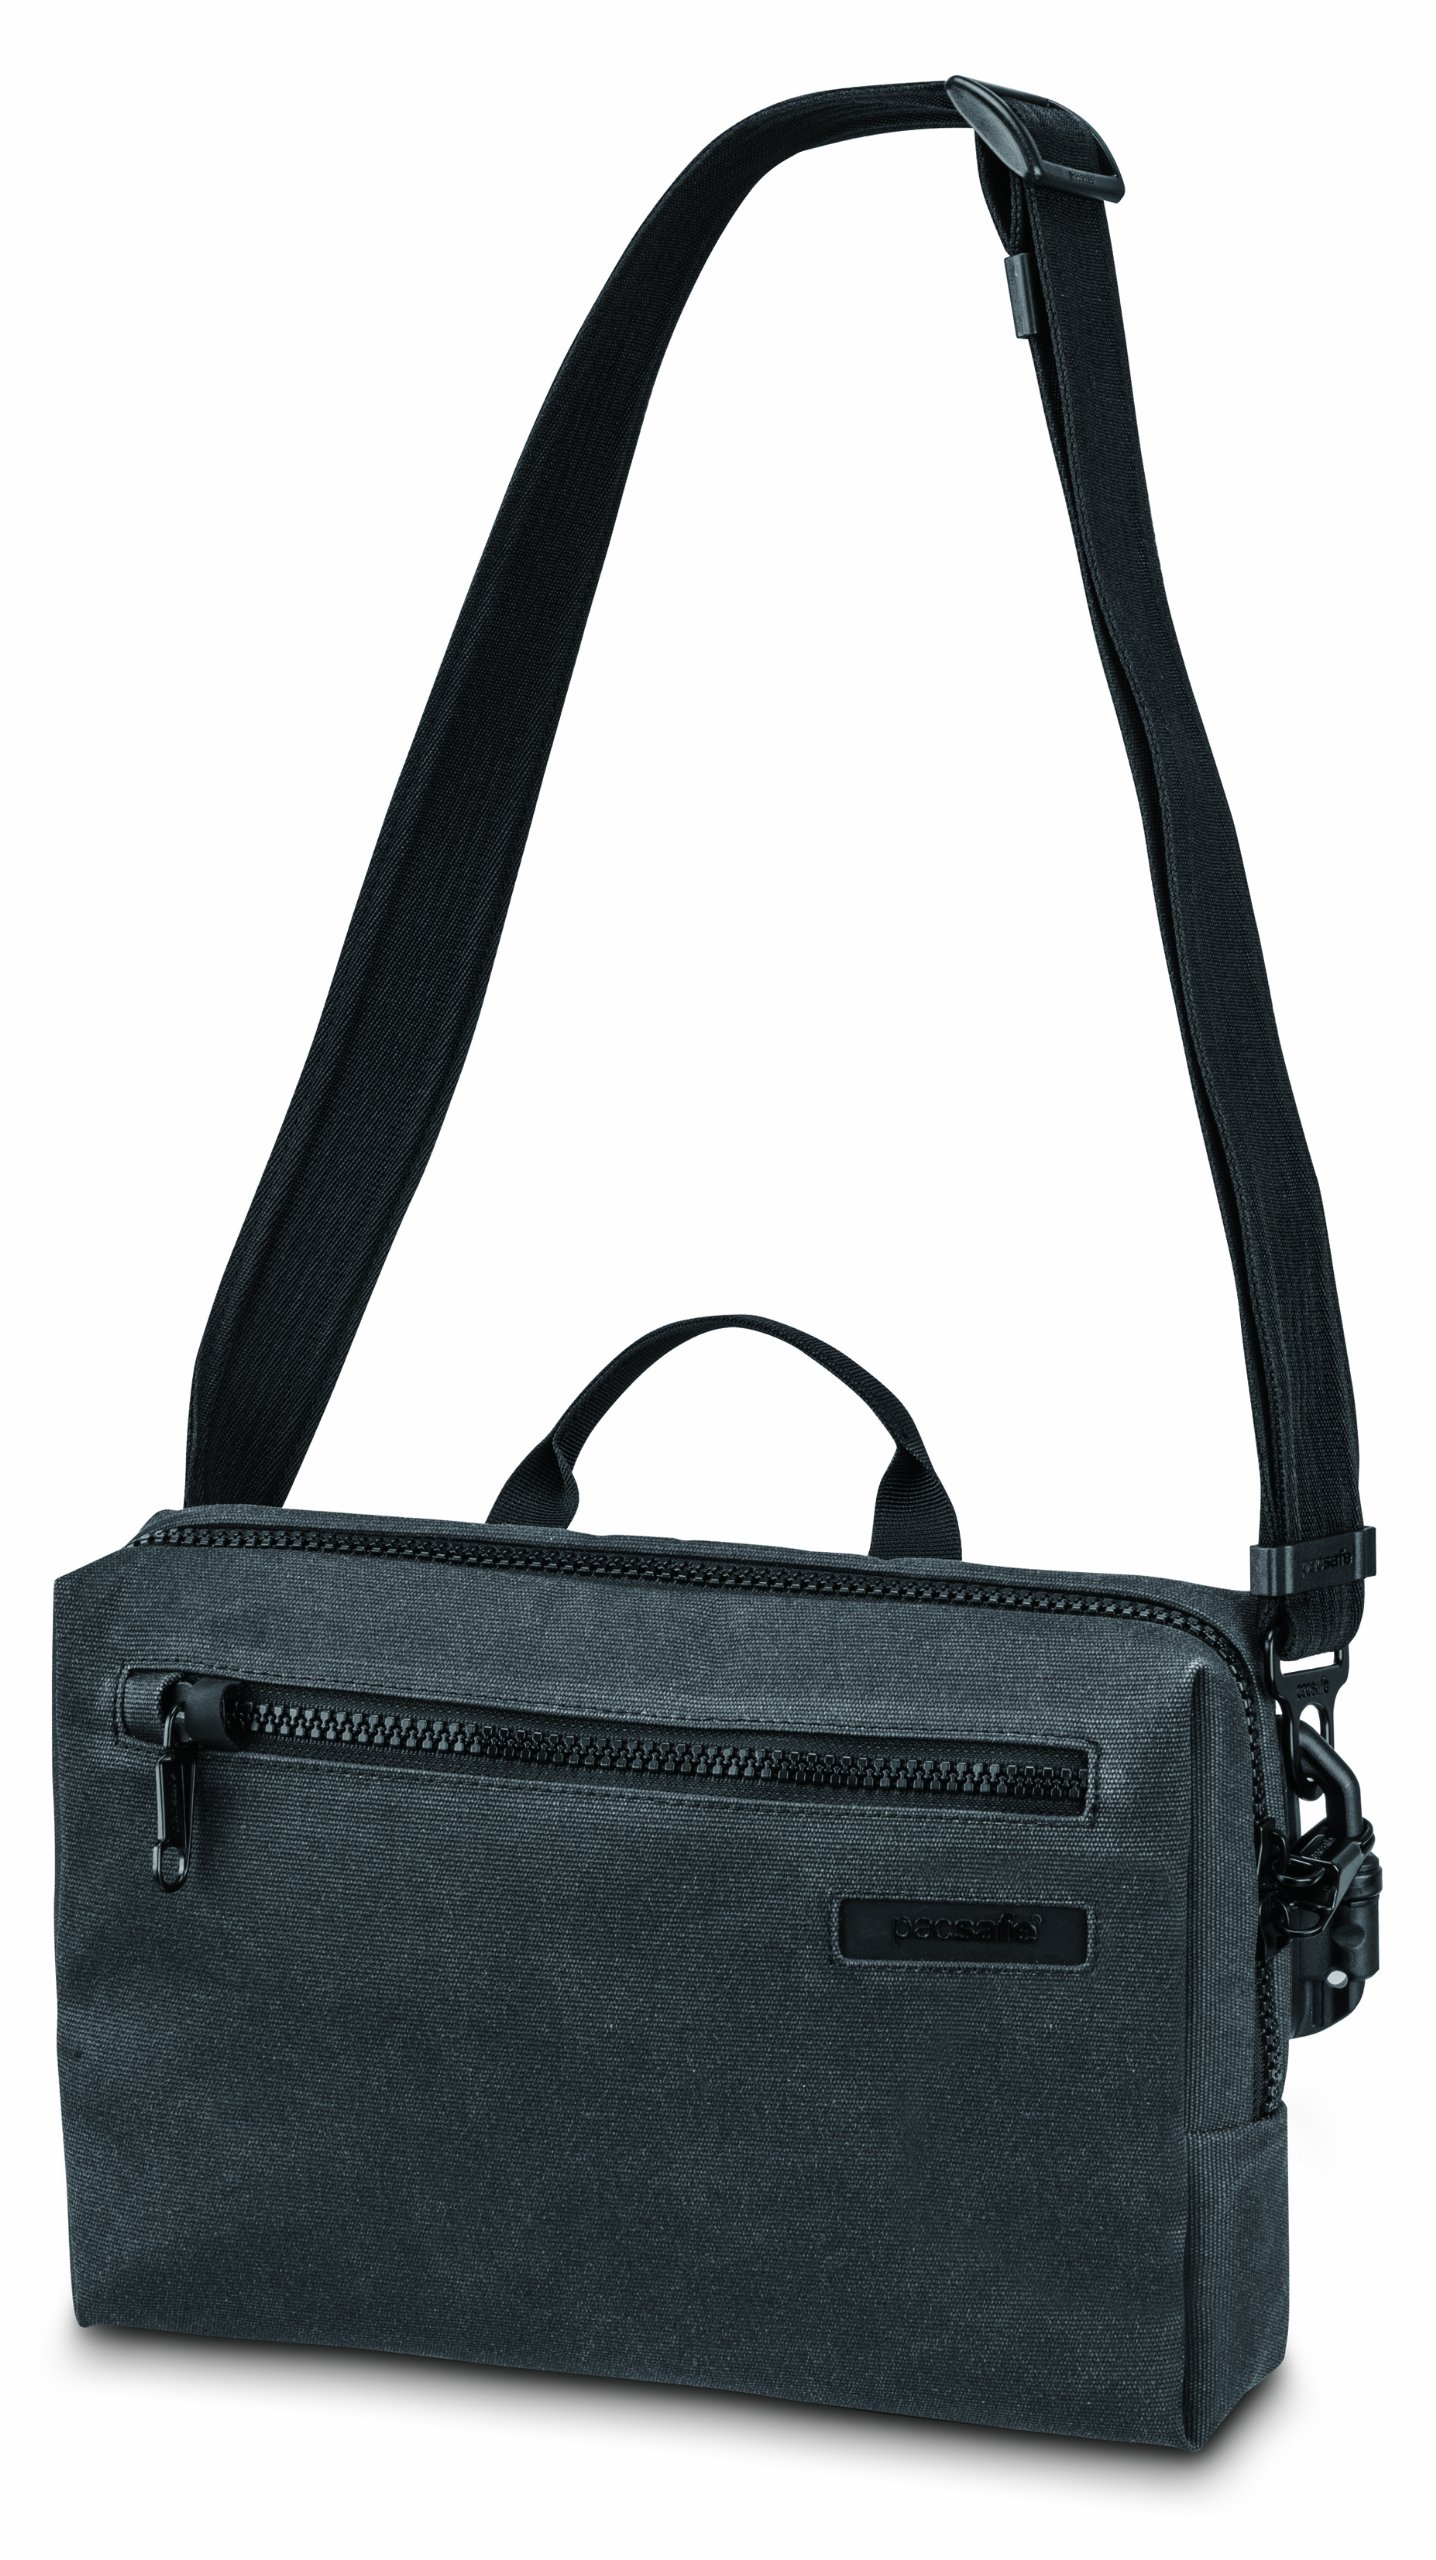 Pacsafe Intasafe Z100 Anti-Theft Cross-Body Pack, Charcoal by Pacsafe